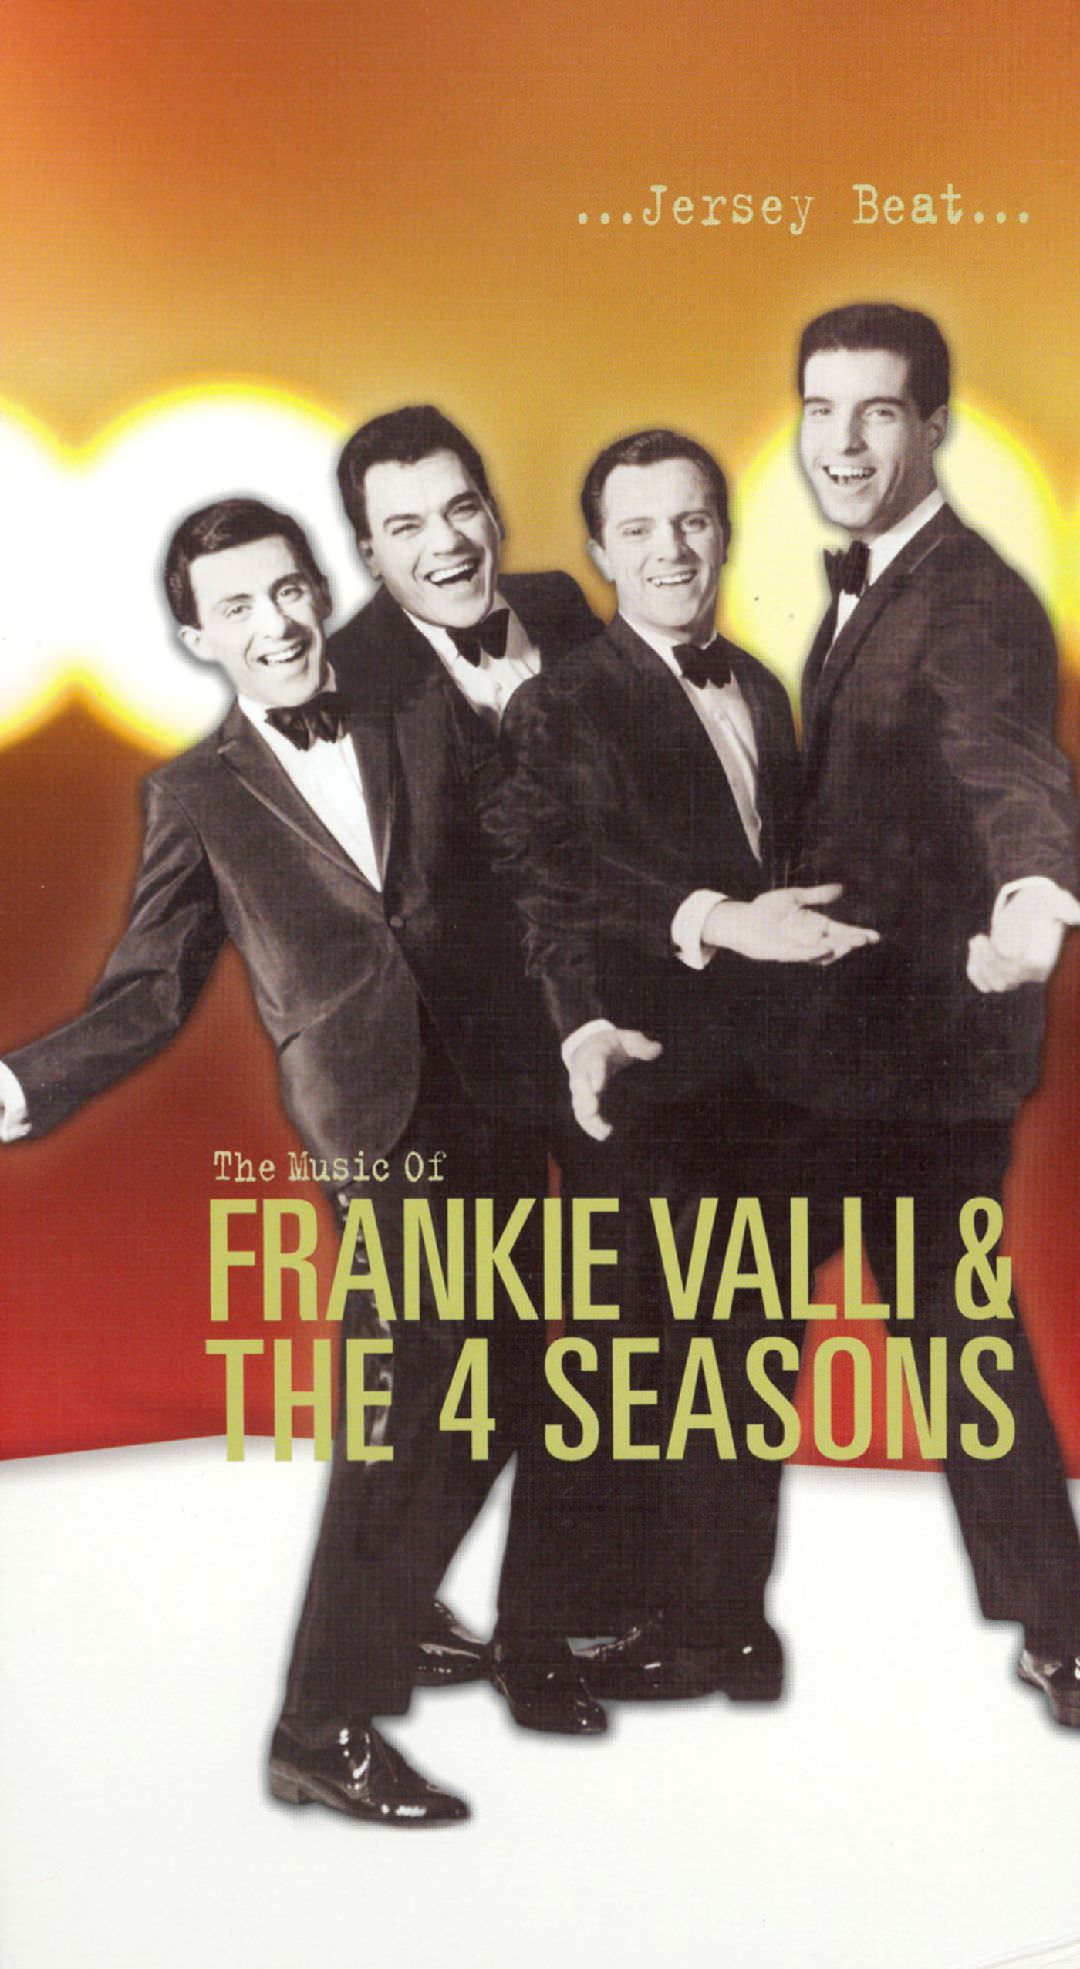 Jersey Beat: The Music Of Frankie Valli & The Four Seasons cover